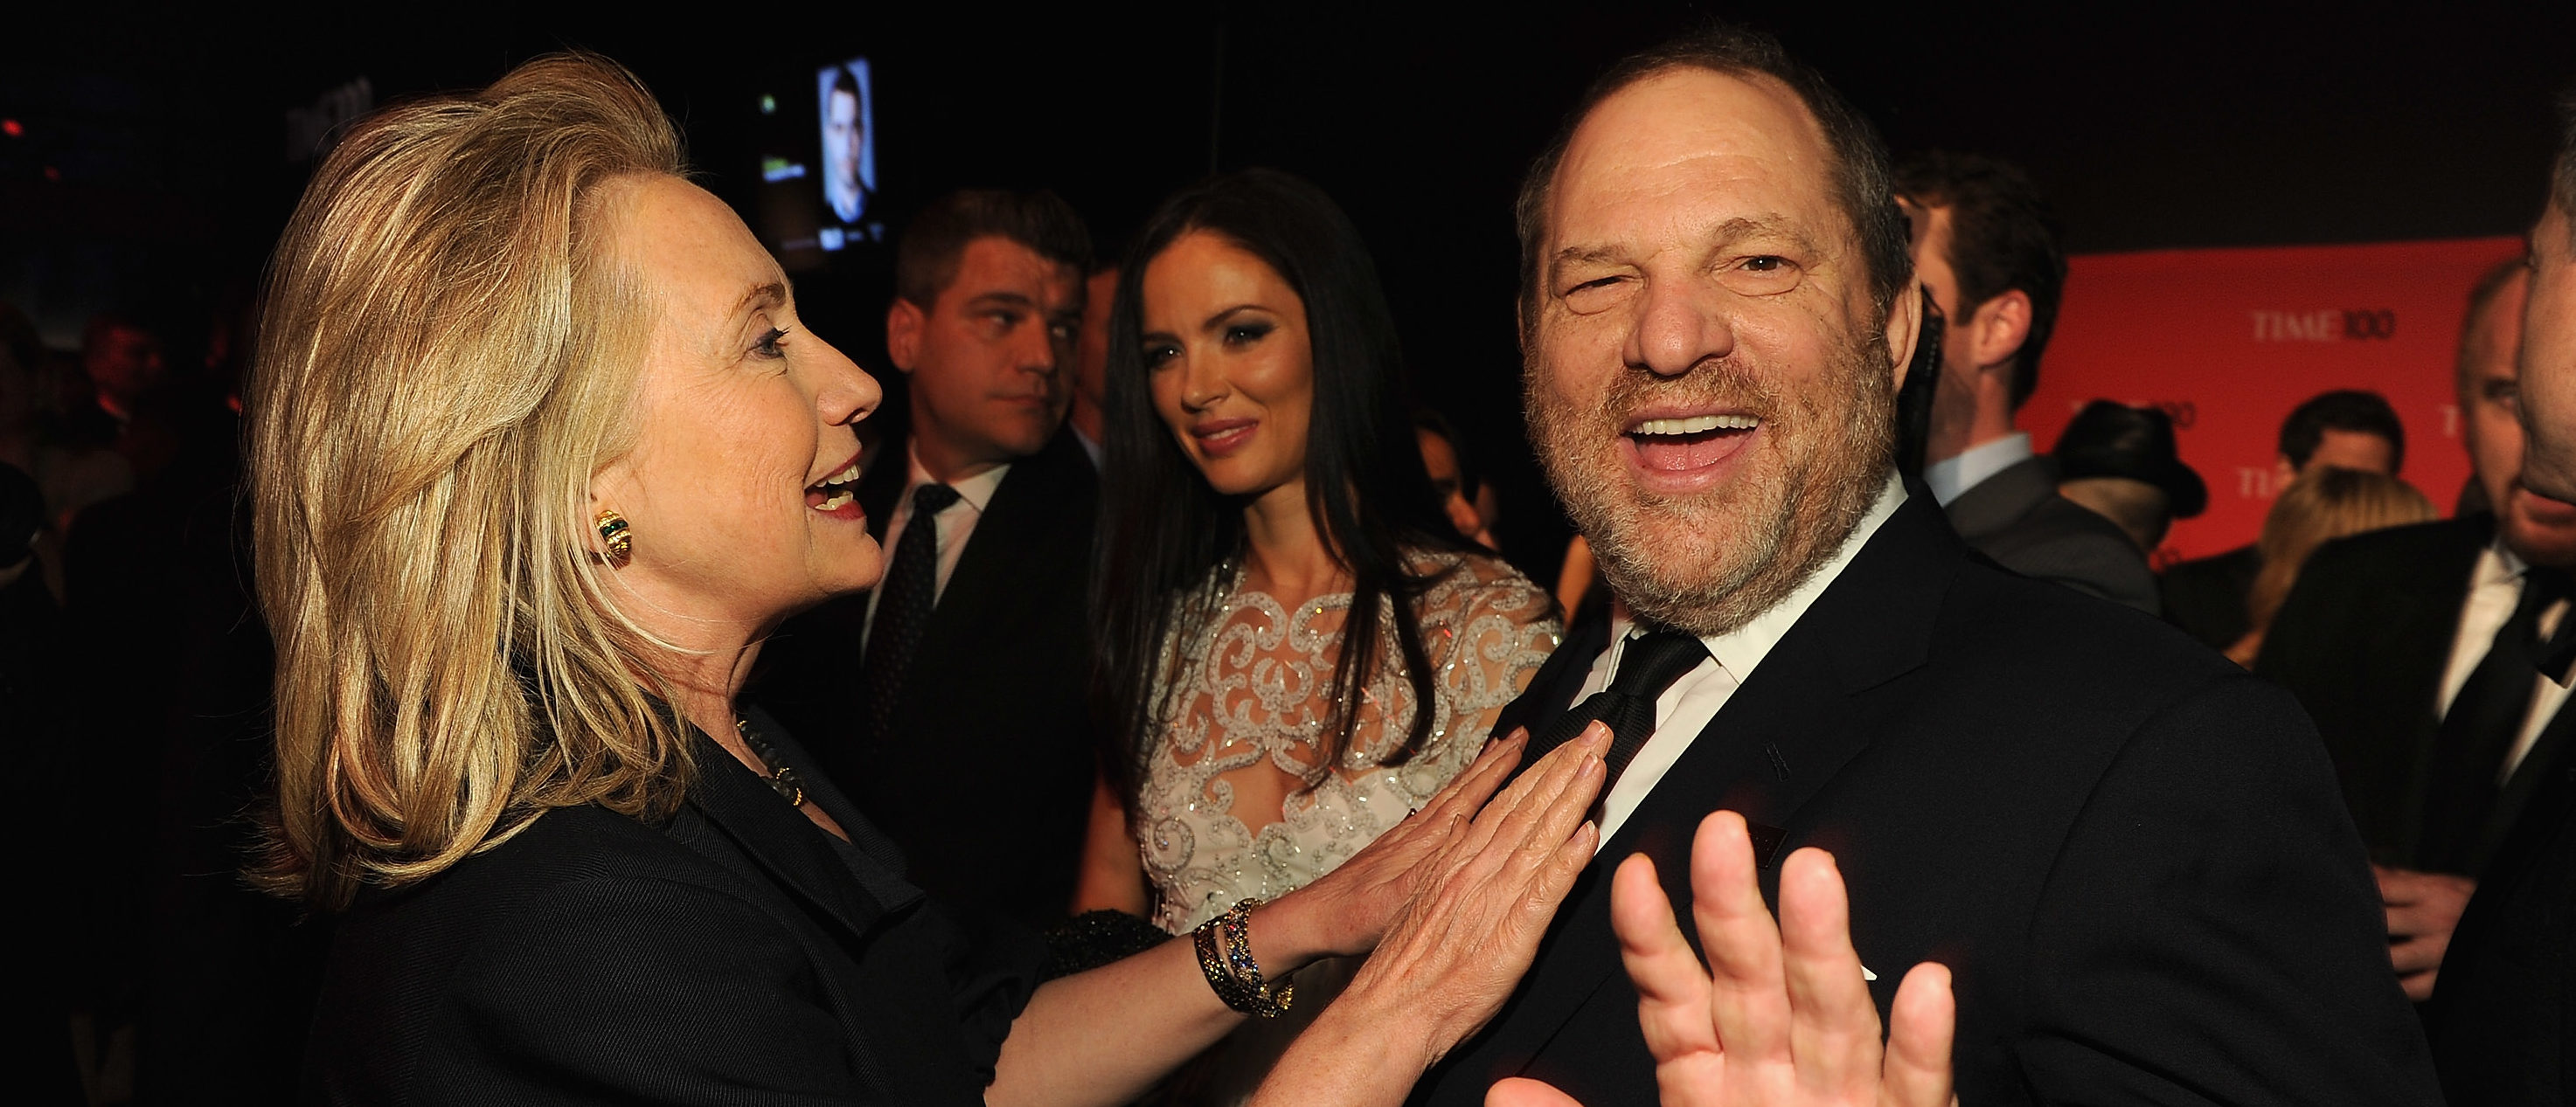 Hillary Says She Had No Way Of Knowing About Weinstein Allegations, But Celebrities Say They Warned Her Campaign